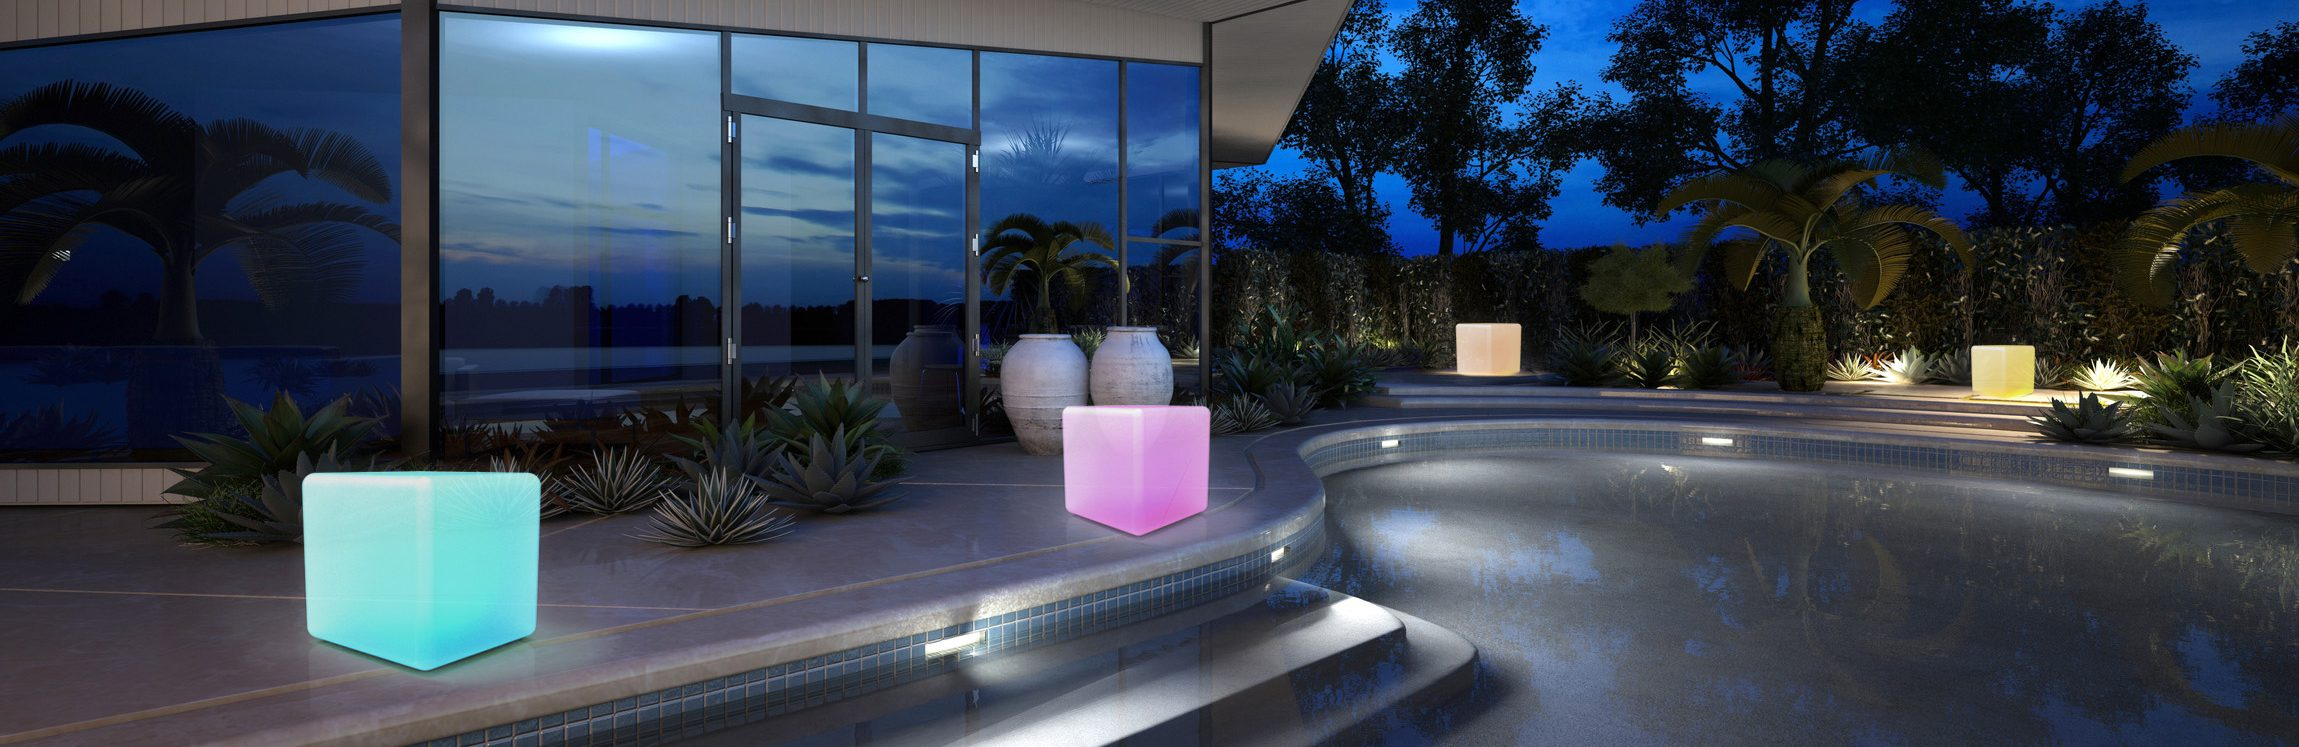 awox-smartlight-ambiance-cube-et-sphere